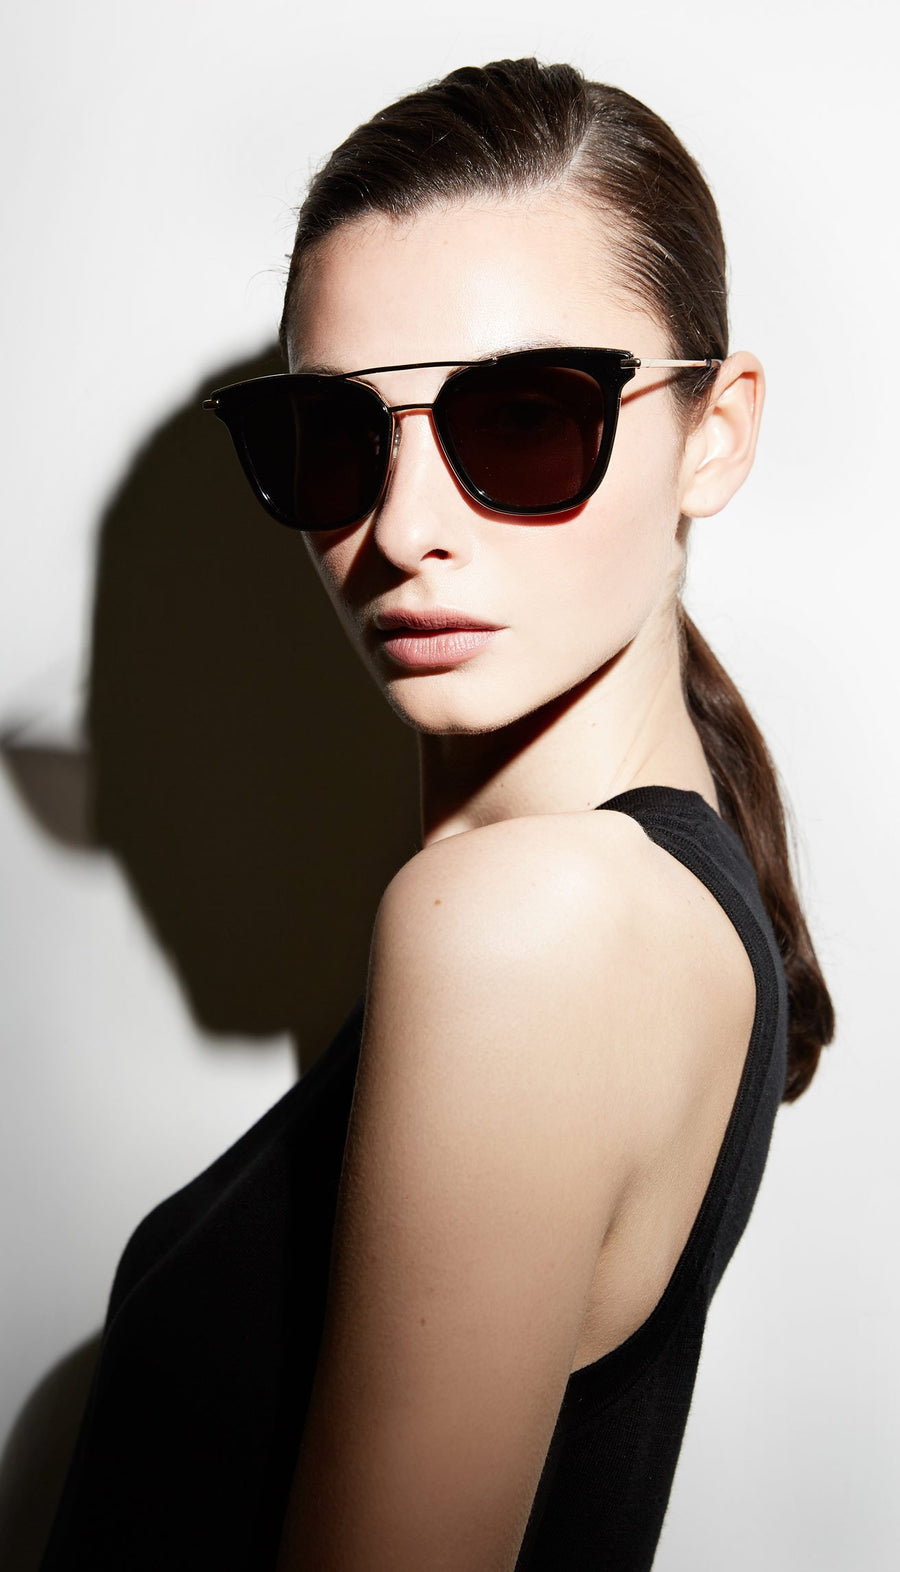 Juliette Hogan | No. 07 Eyewear Black/Gold